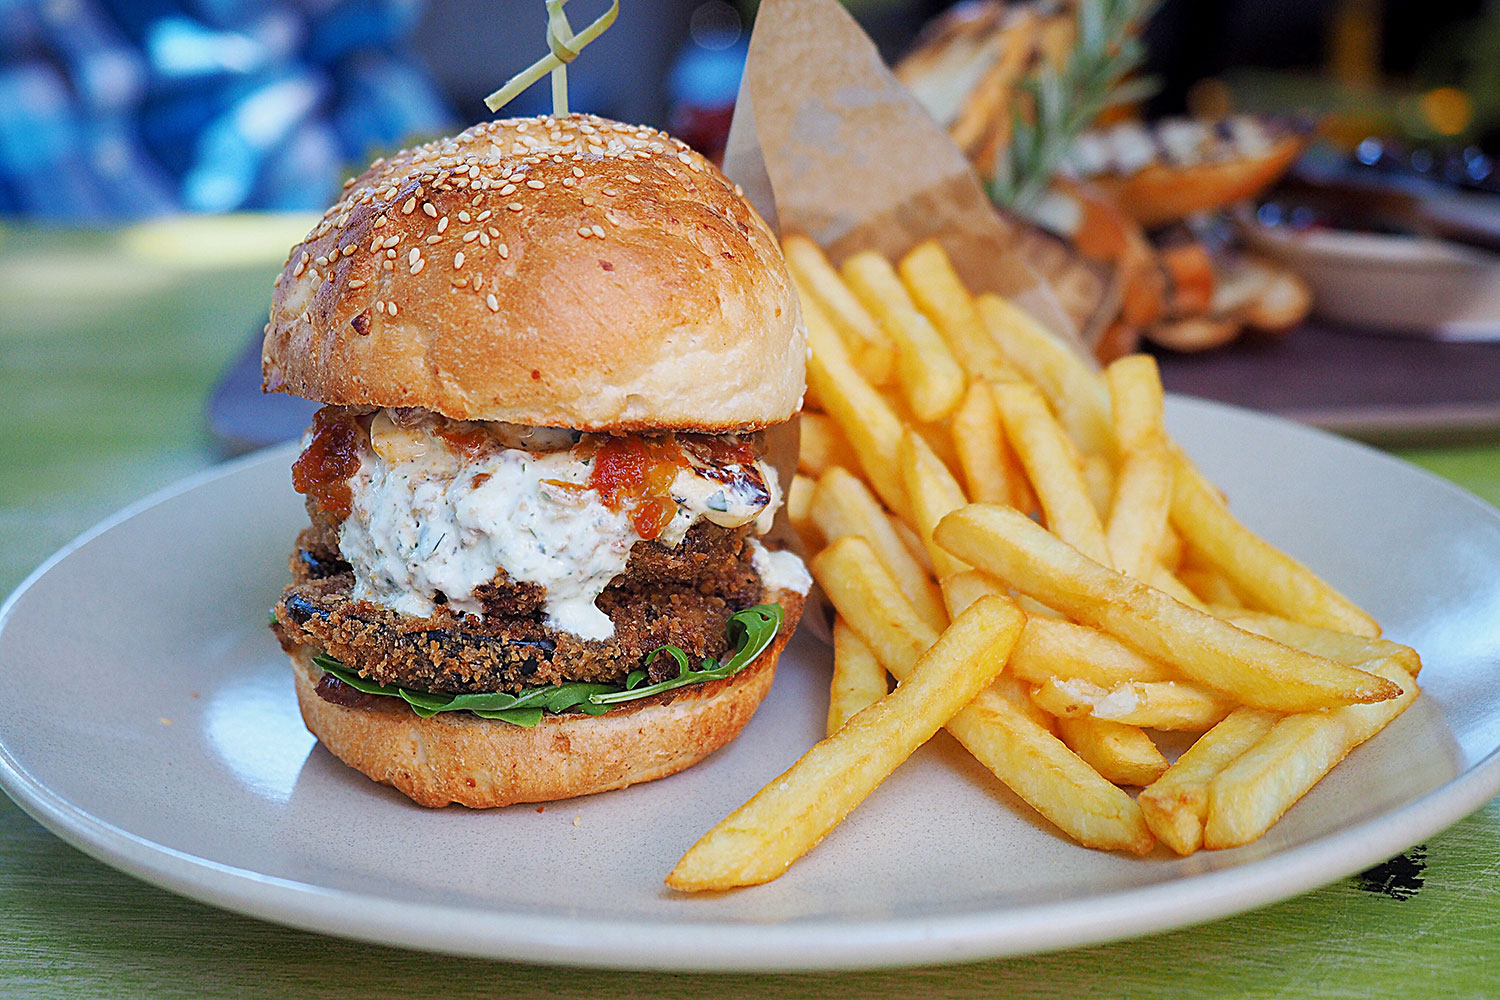 Crumbed Eggplant Burger with rocket, haloumi, homemade relish, mint and garlic yoghurt with a side of chips, $18: The Vic on the Park, Marrickville. Sydney Food Blog Review